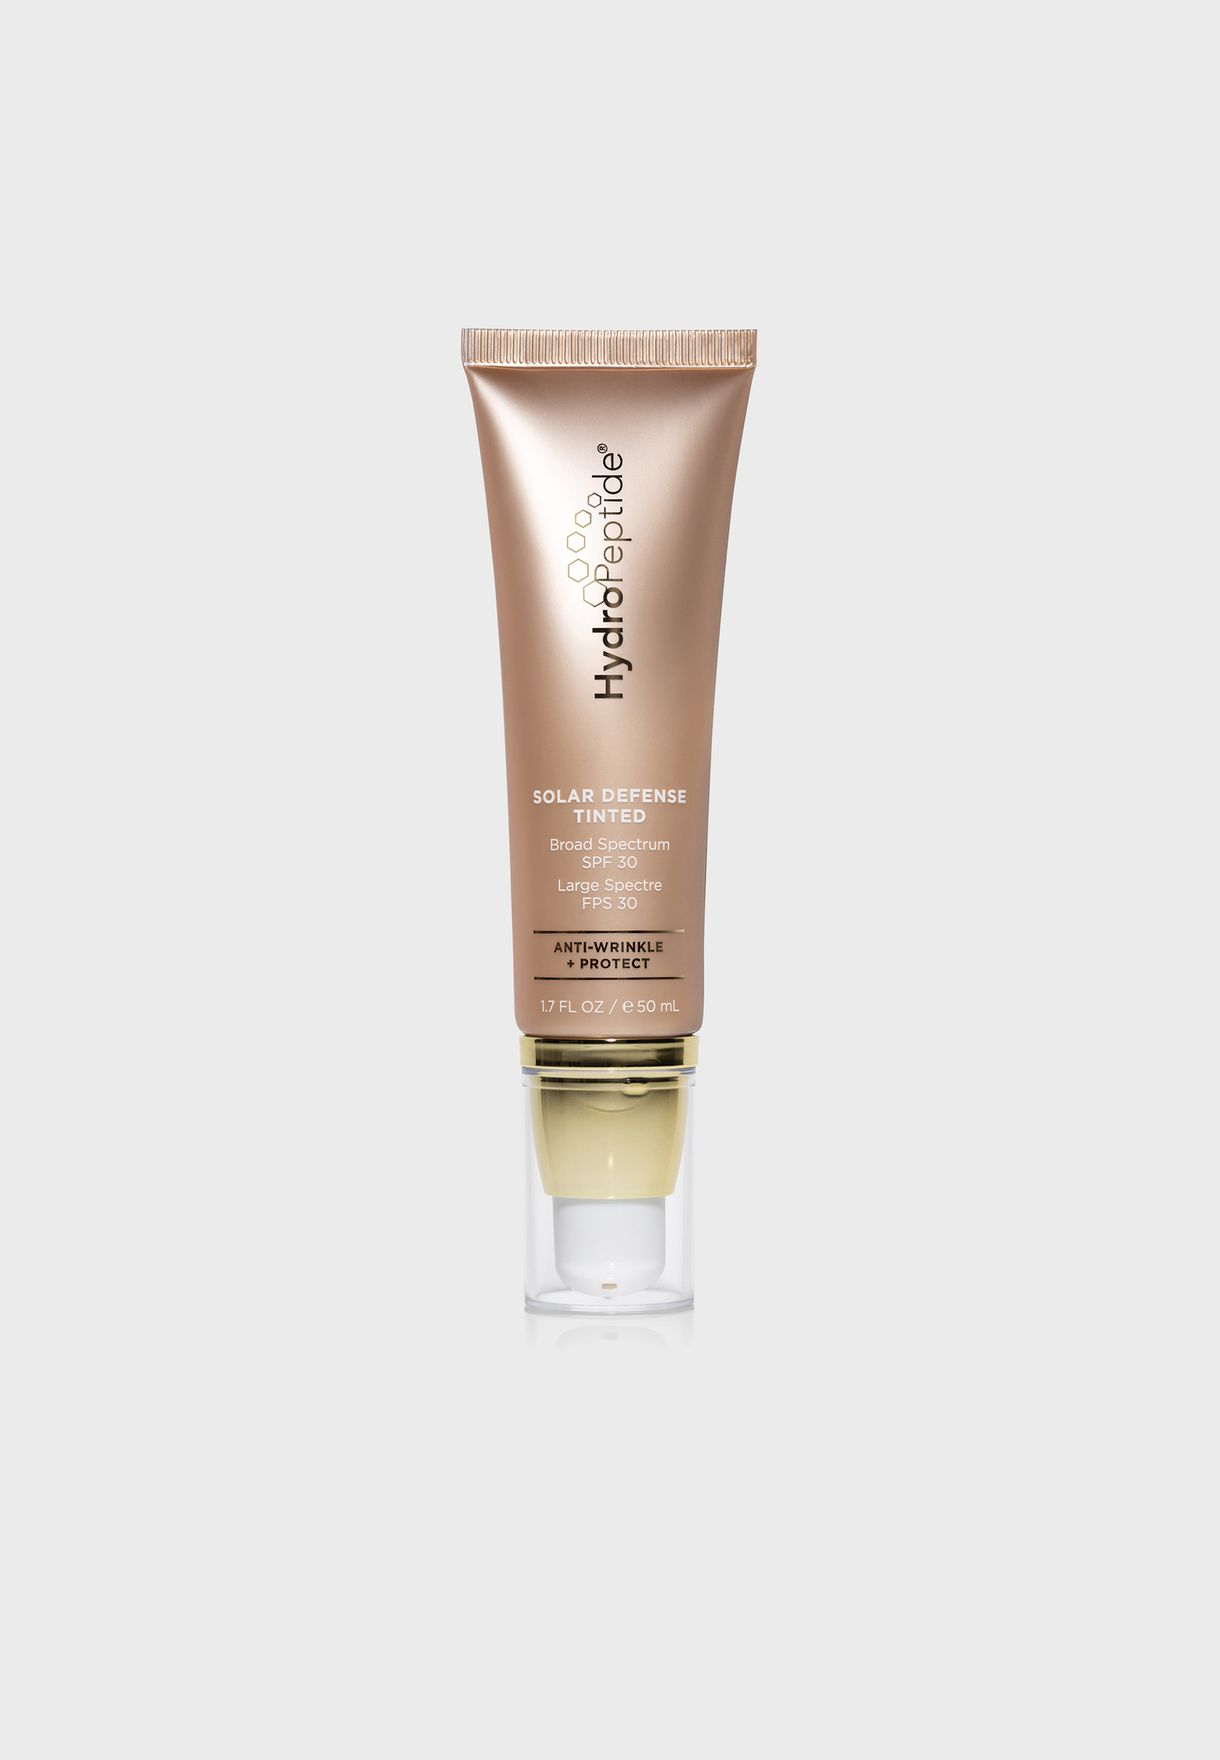 Gold 30 SPF solar defence face tinted